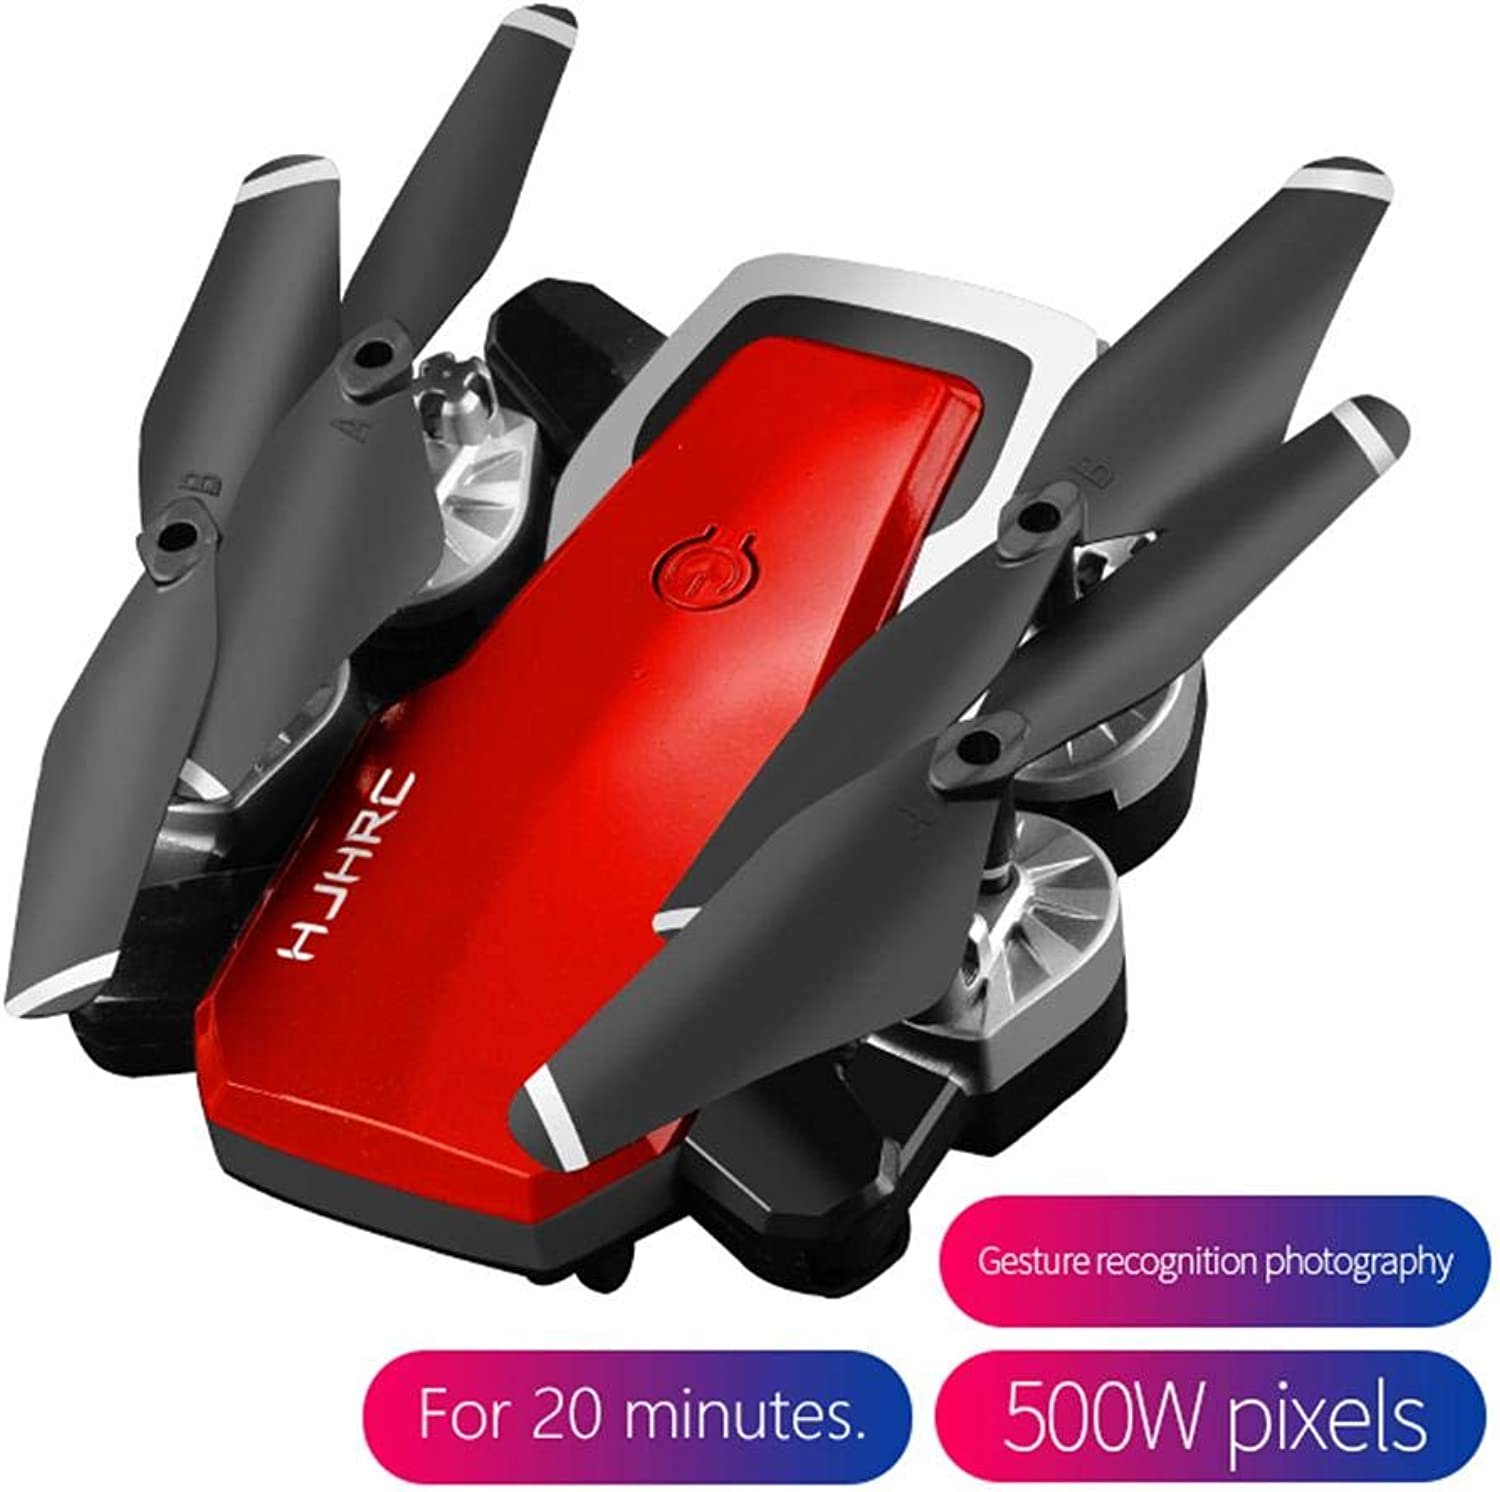 RC Drone Quadcopters Folding 5MP Camera WiFi RealTime Transmission 360° redatio Gesture Altitude Hold Headless Mode One Key Return, 20 Minutes Long Battery Life